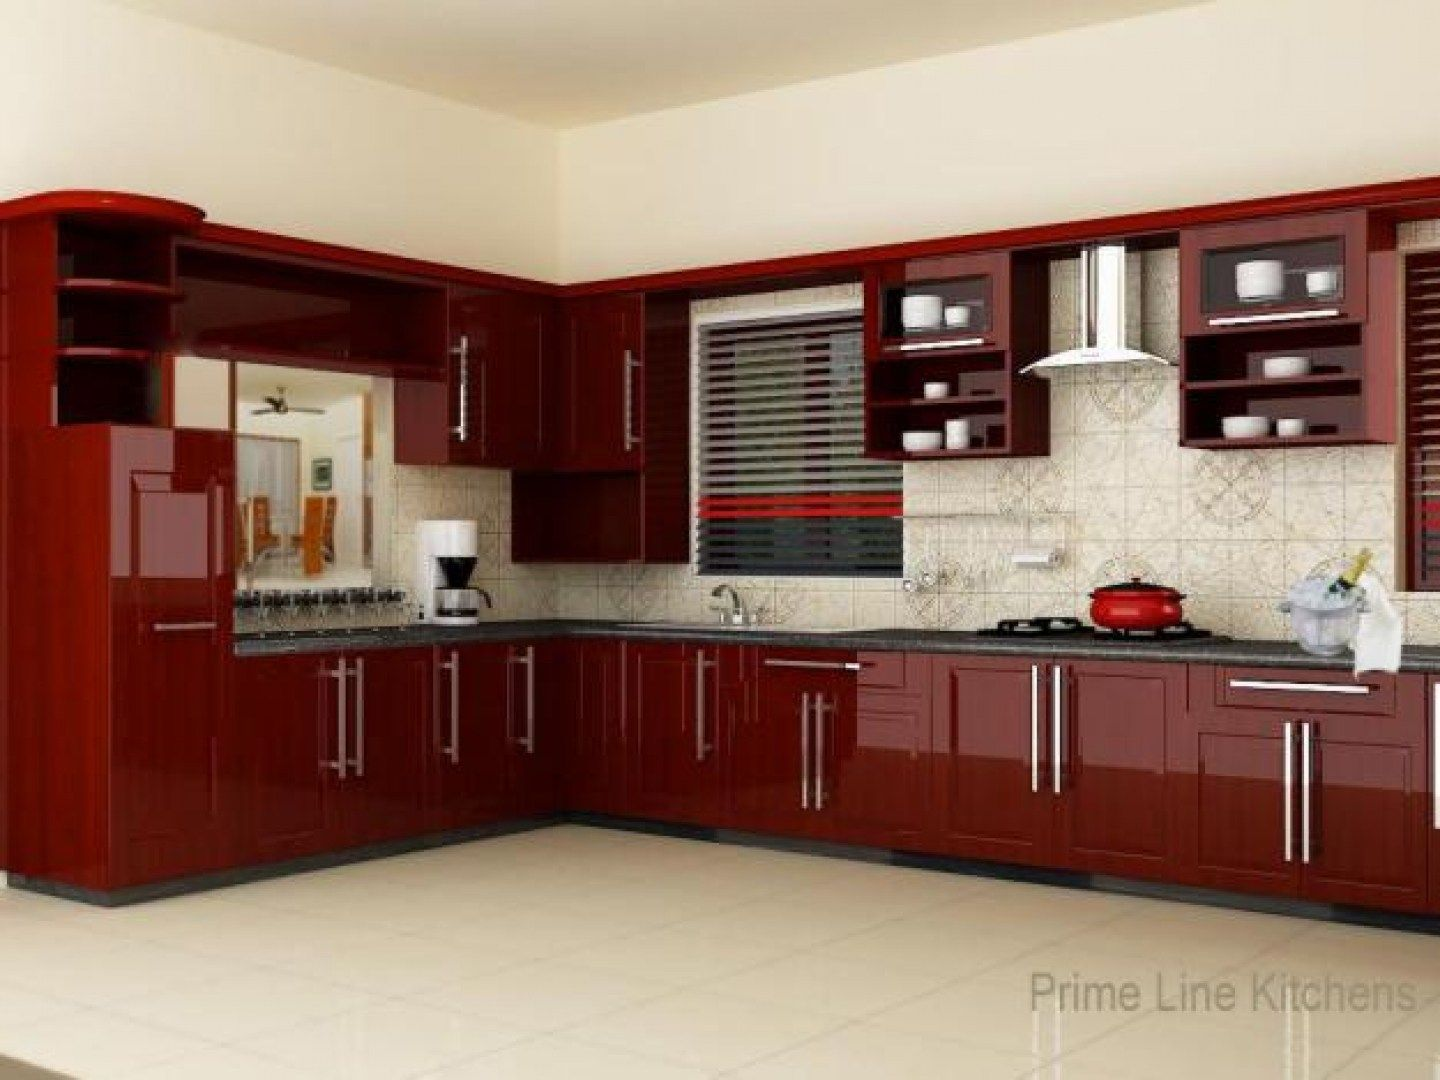 Kitchen design ideas kitchen woodwork designs hyderabad for Kitchen design units